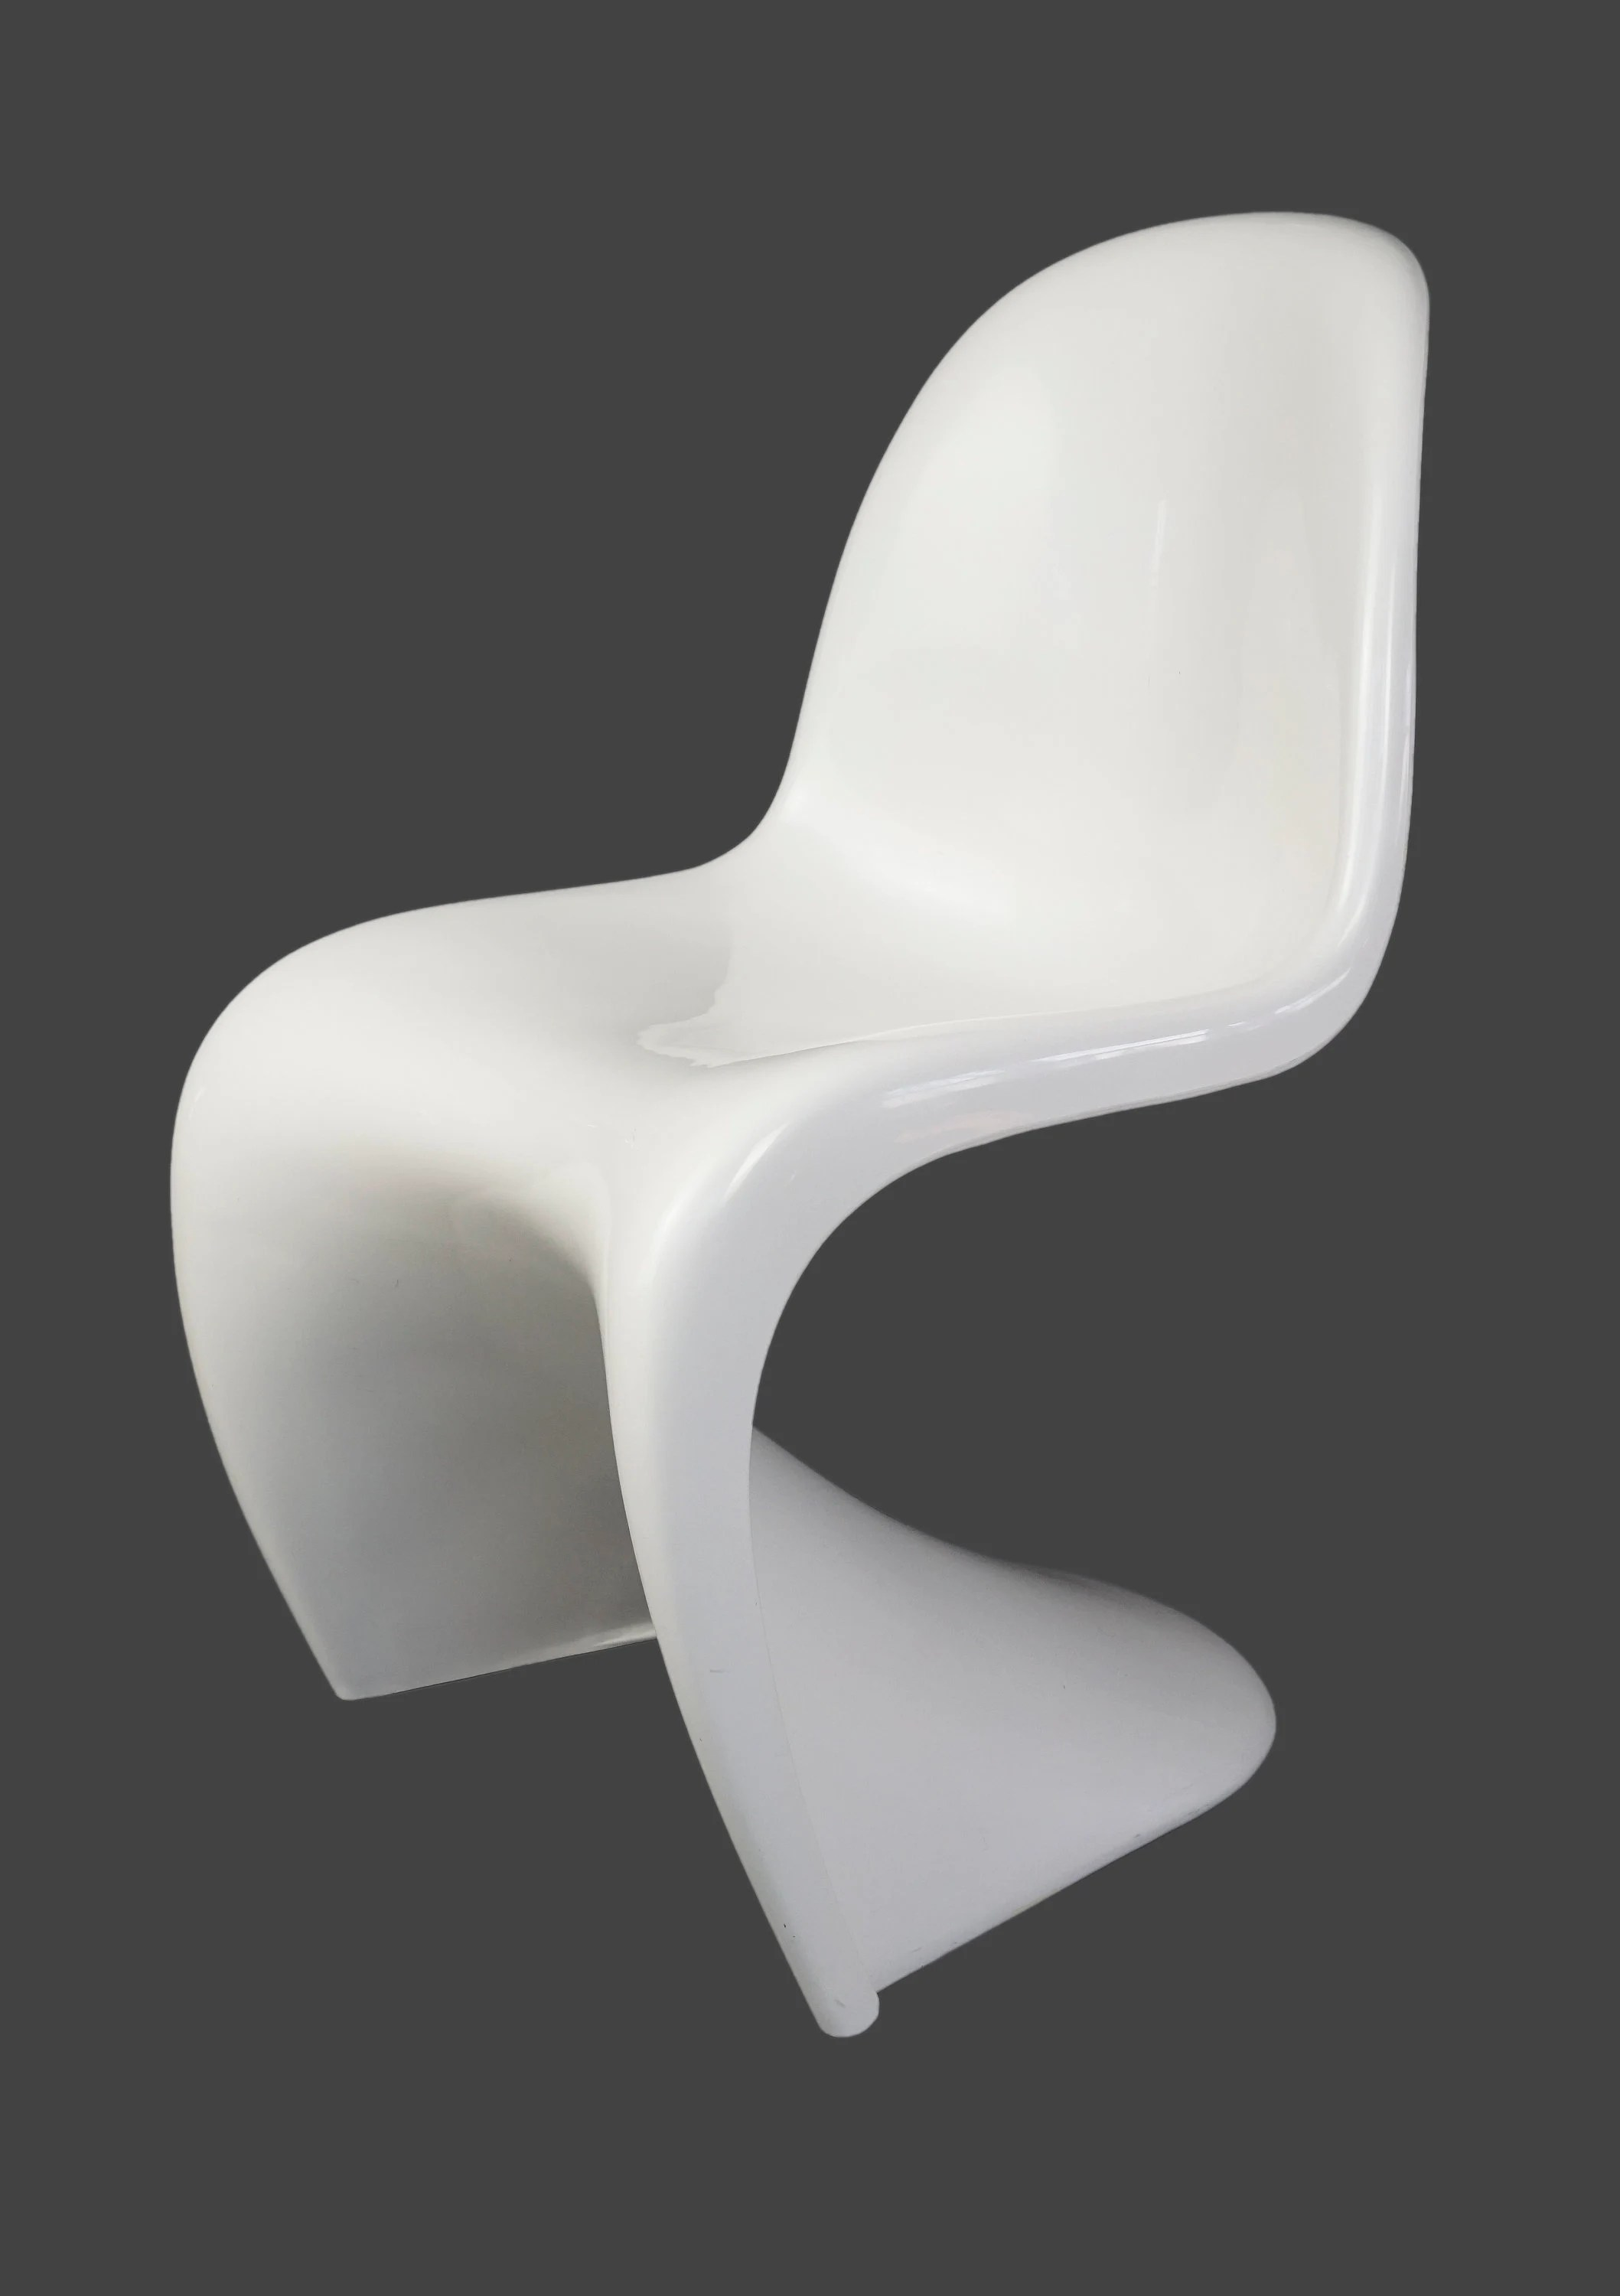 S Shaped Chair Herman Miller Panton Chair S Shaped White Color Designer Genuine Verner Panton Mid Century Modern